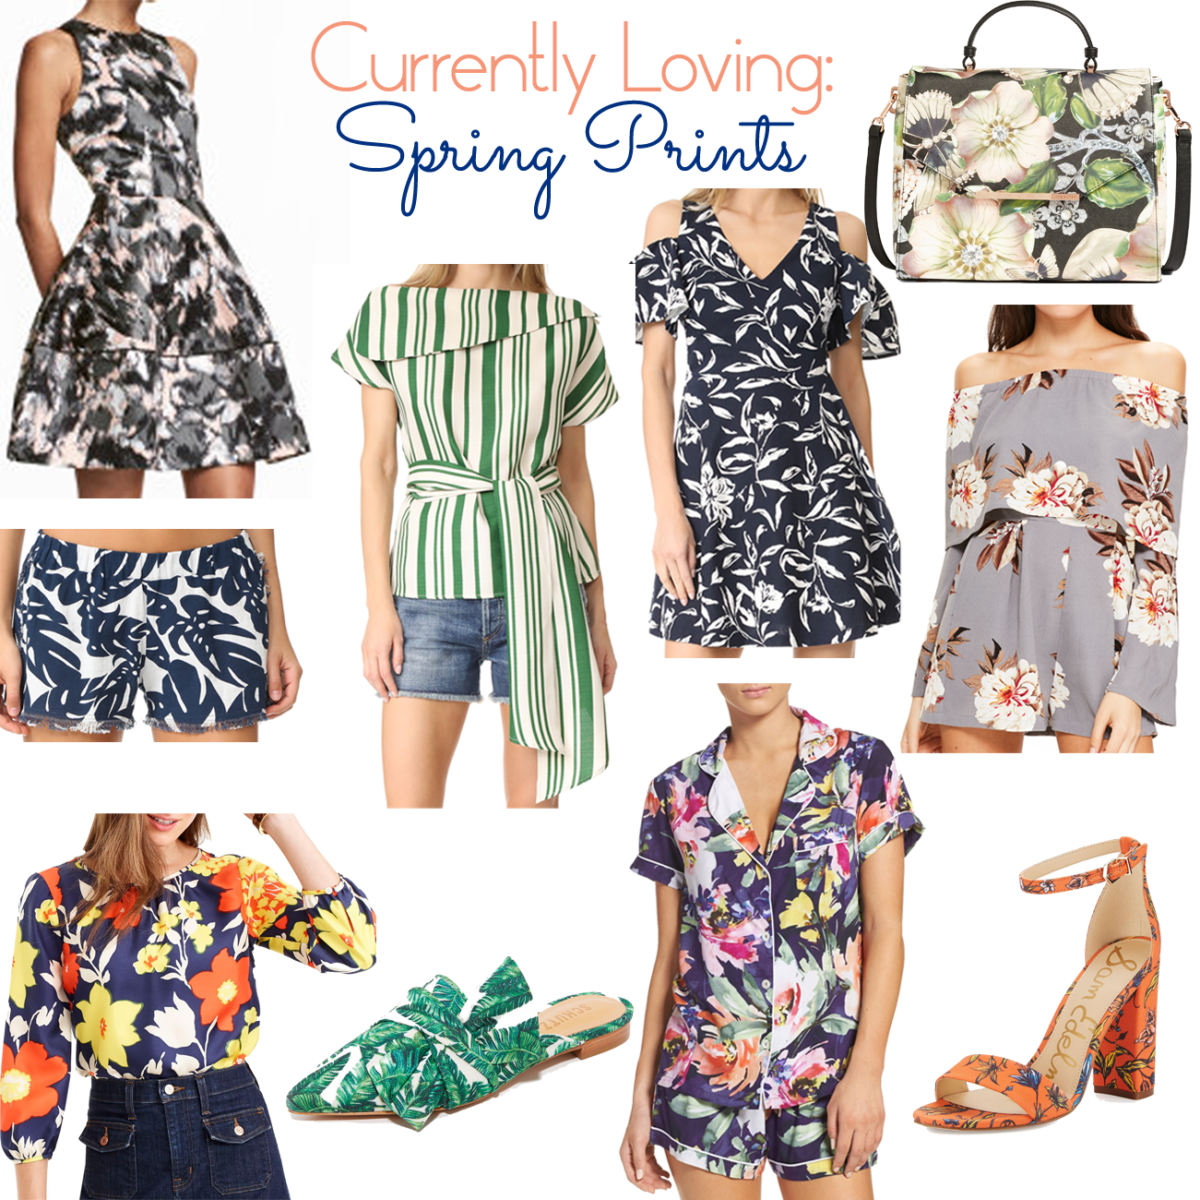 Currently Loving: Spring Prints